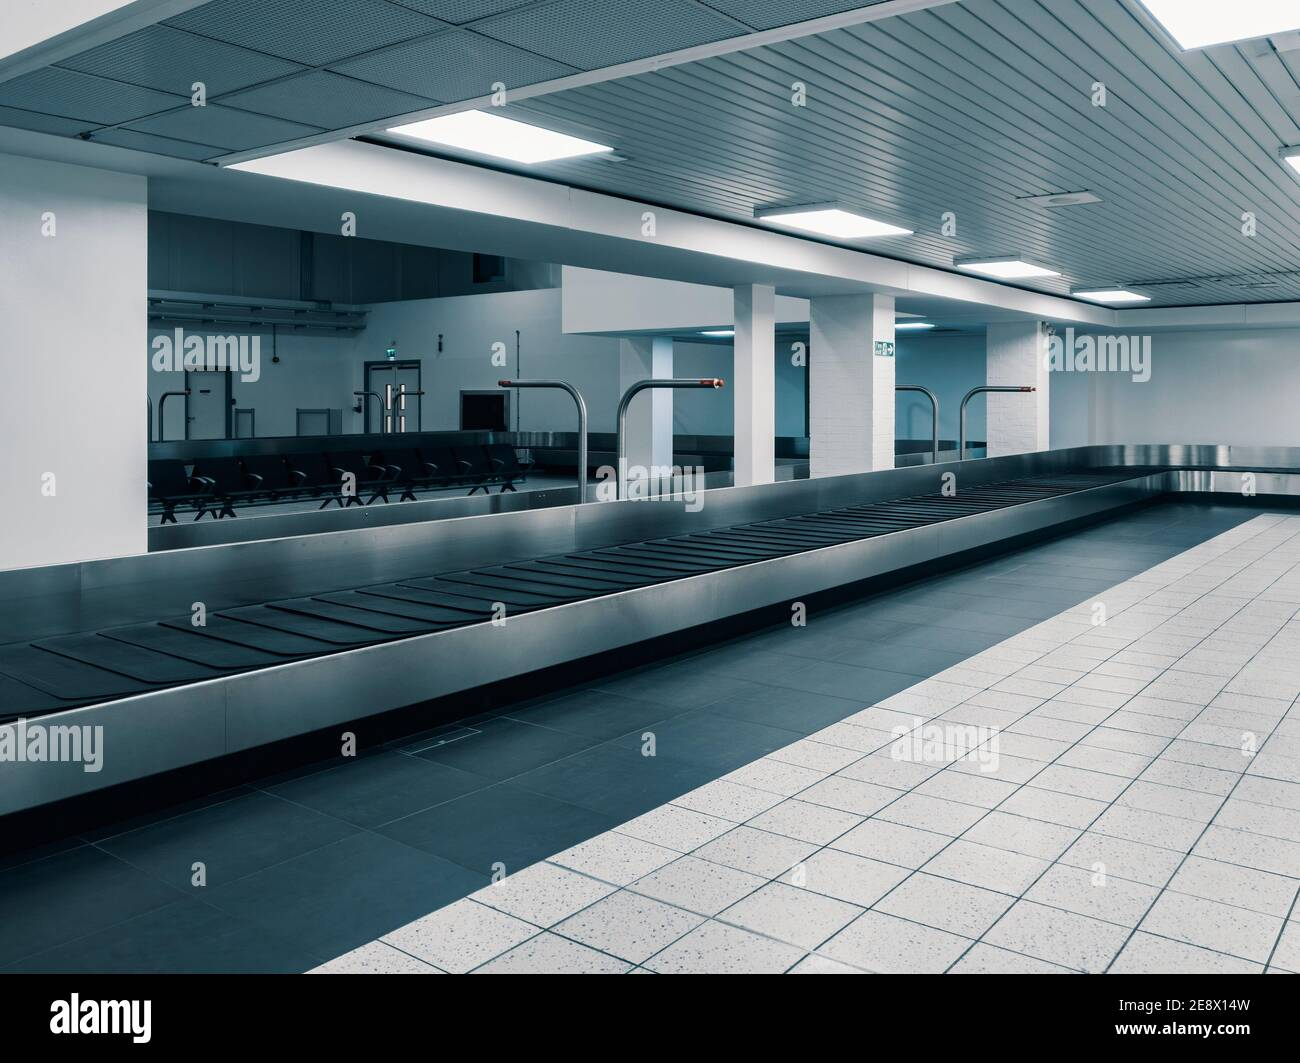 Covid-19 Lockdown - London Luton Airport - Empty Baggage Carousel at Arrivals - Effects of the travel ban due to the Novel Coronavirus Stock Photo